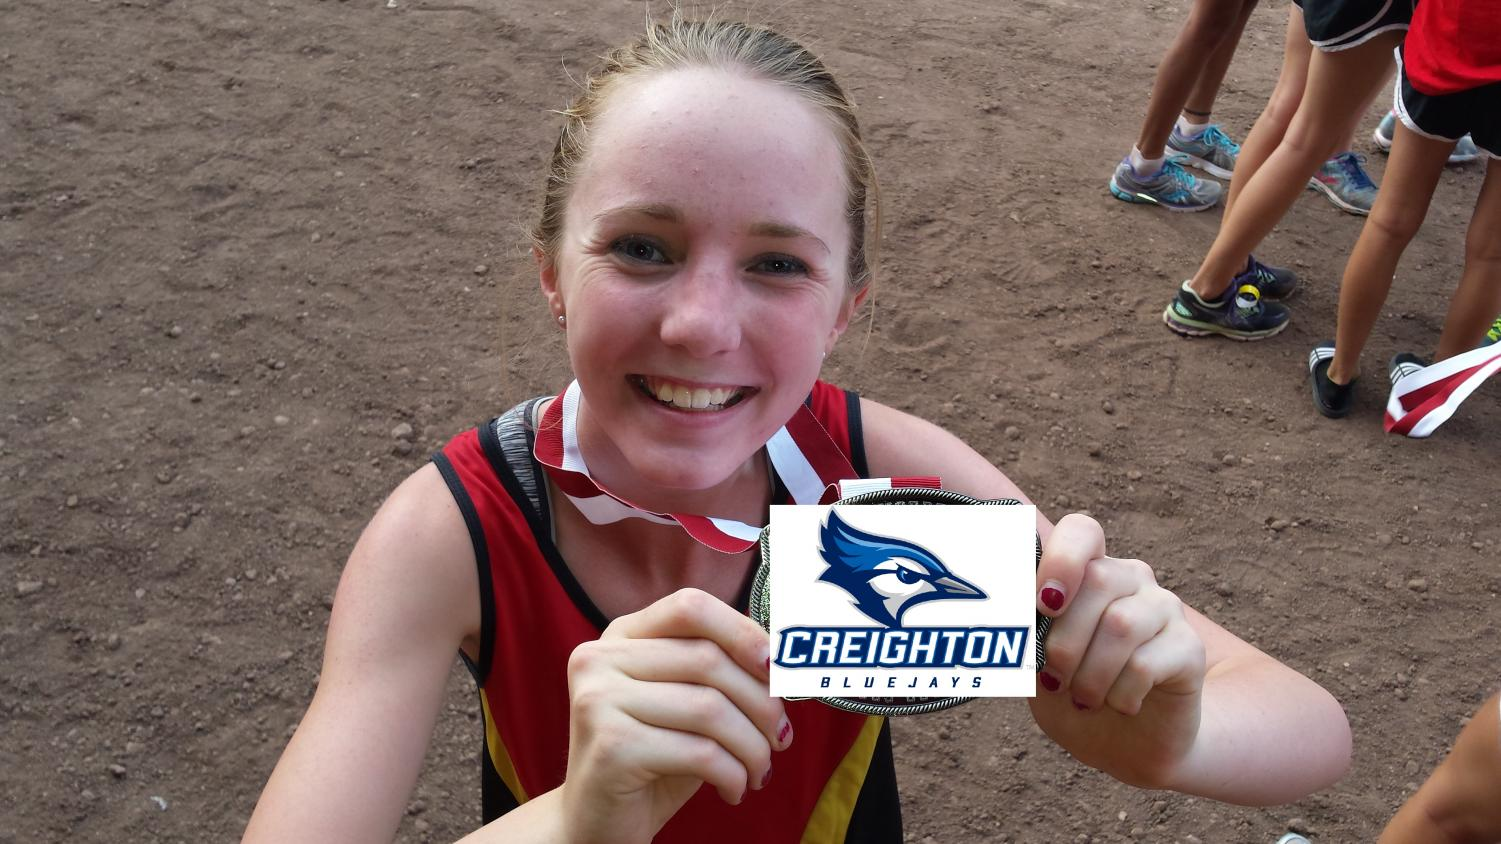 Senior Chloe Cassens is all smiles after commiting to run collegiate cross country at Creighton!